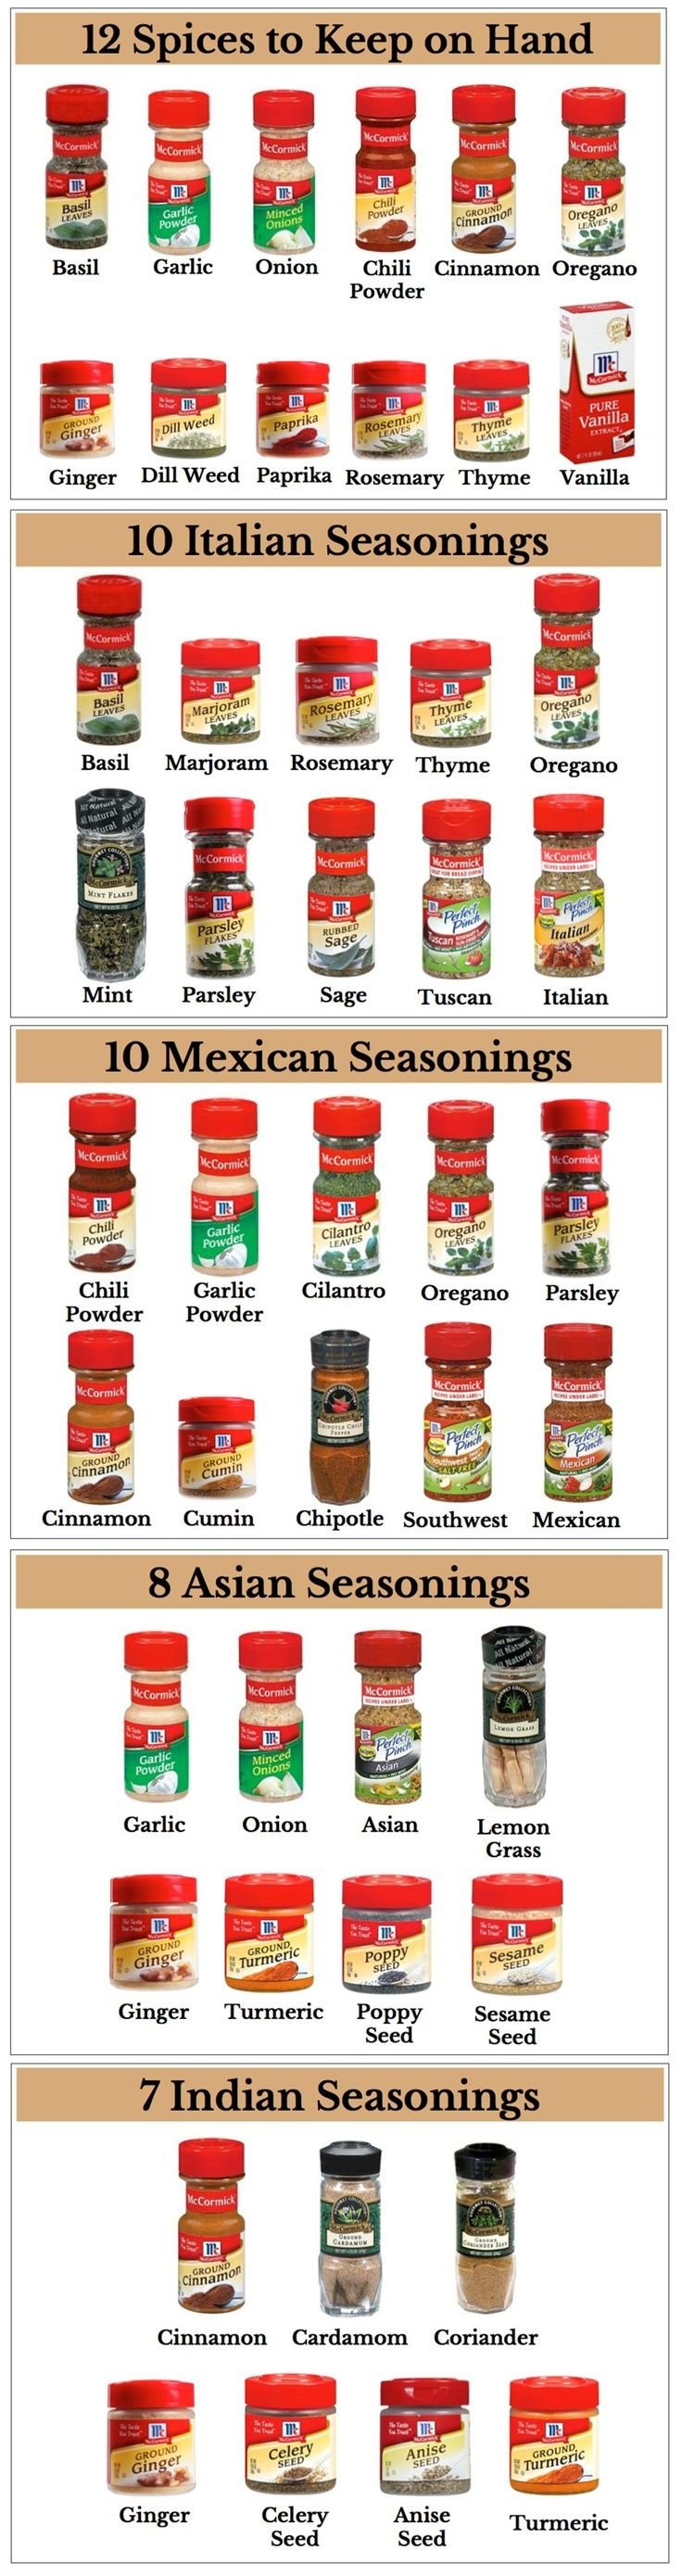 Great suggestion of spices to